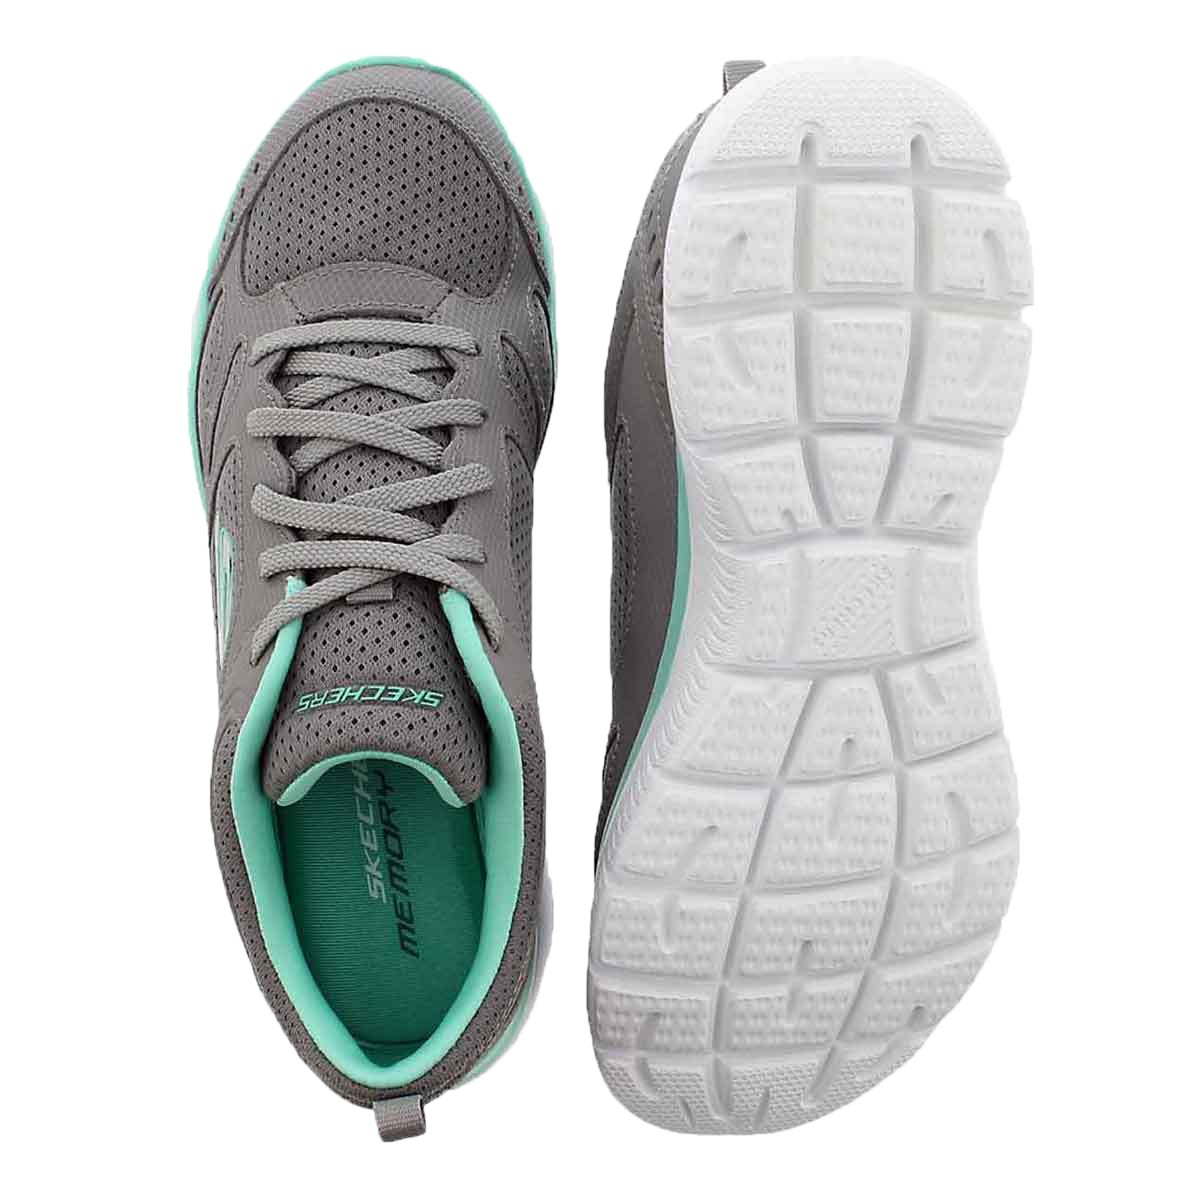 Lds Summits Suited gry/trq sneaker